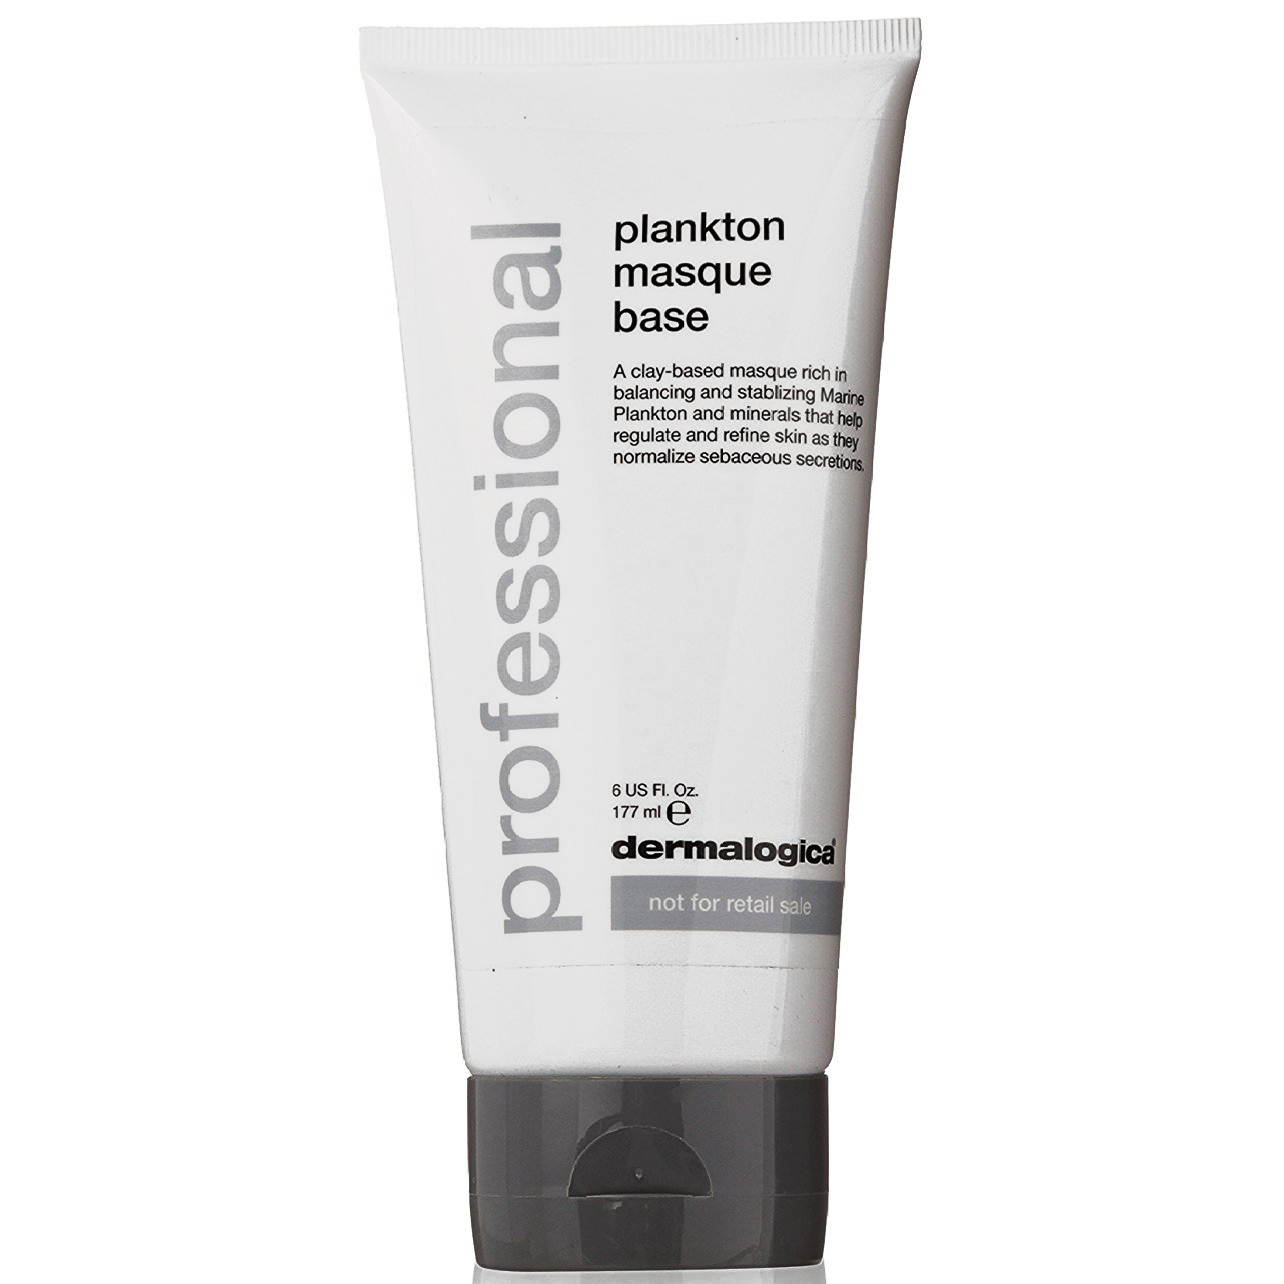 Dermalogica Plankton Masque Base 177ml / 6oz